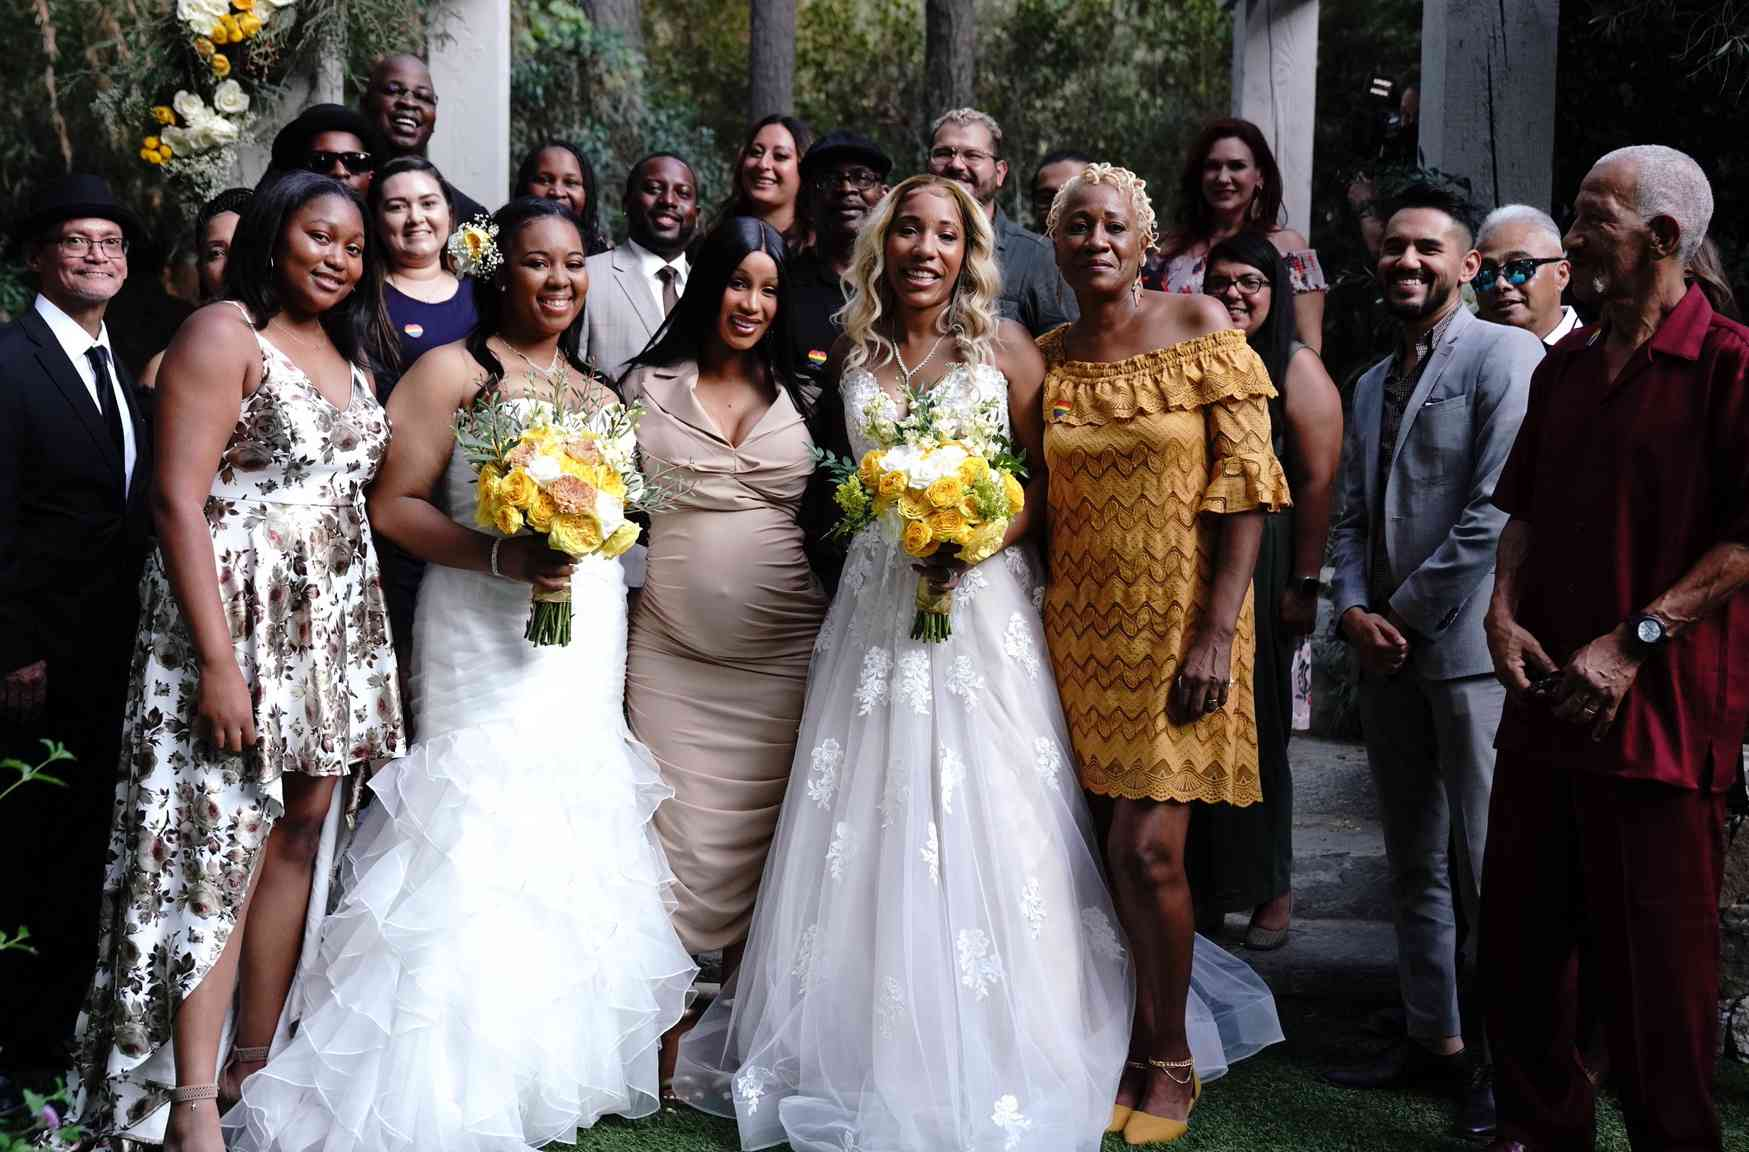 Cardi B and wedding party